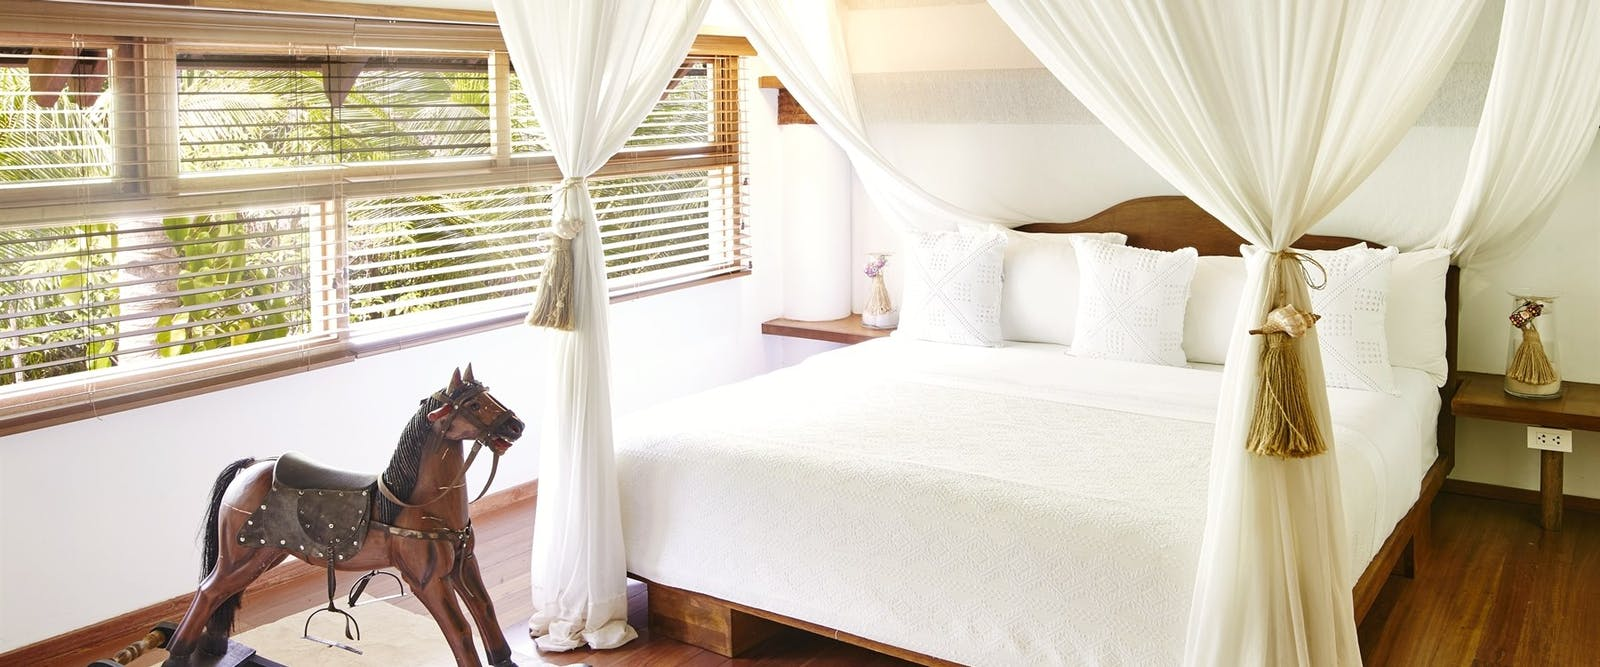 deluxe attic room at Nay Palad Hideaway, Siargoa